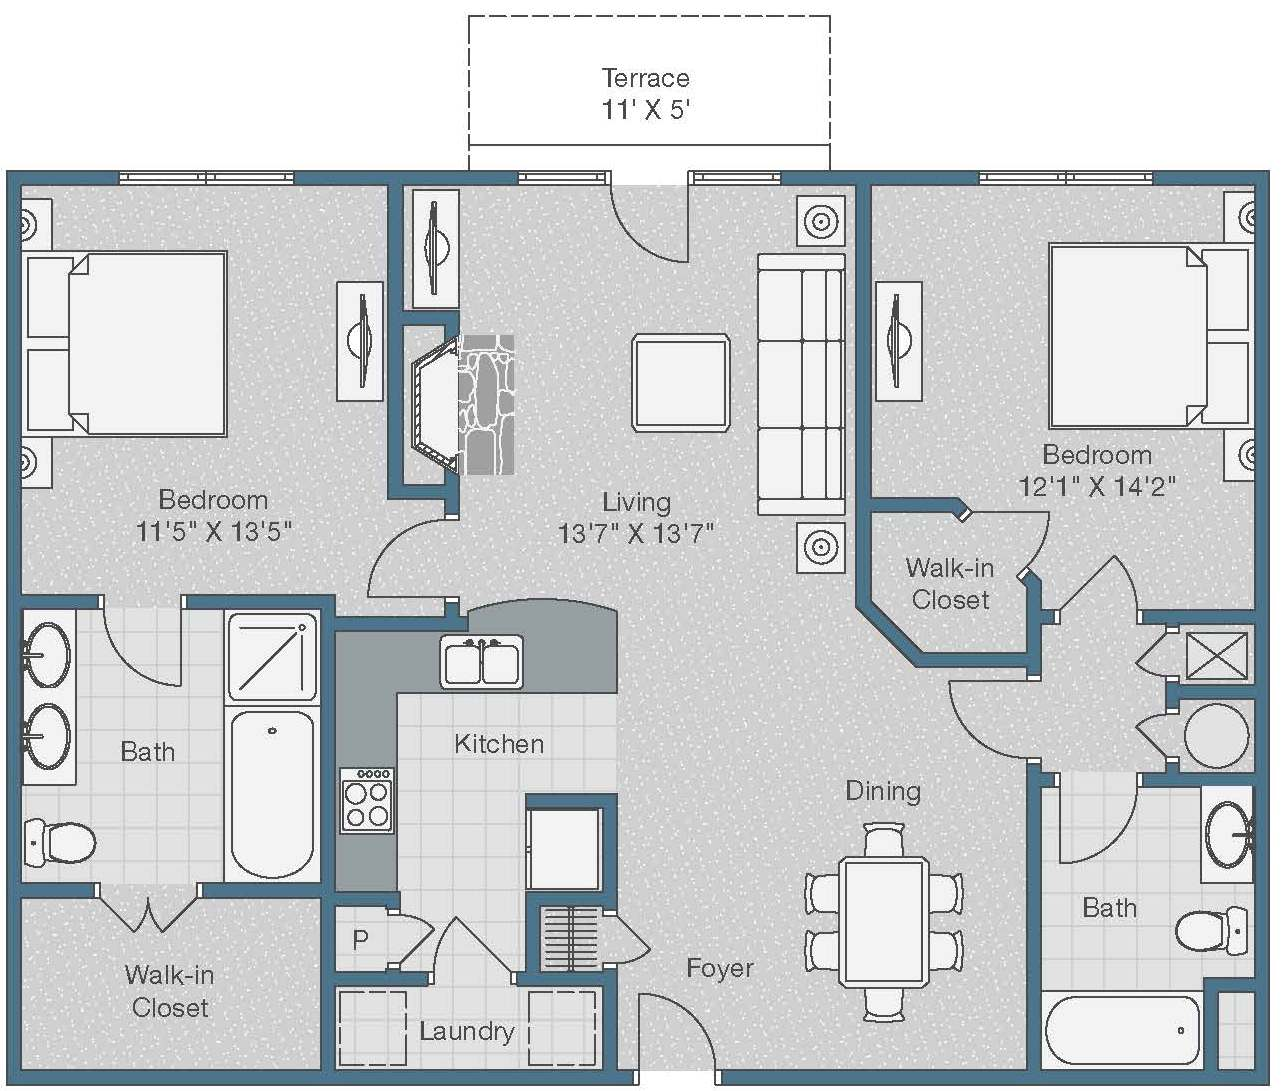 2 bedroom charlotte nc apartments rentals as one bedroom apartments  charlotte nc 2  1 Bedroom. 2 Bedroom Apartments Charlotte Nc  universalcouncil info